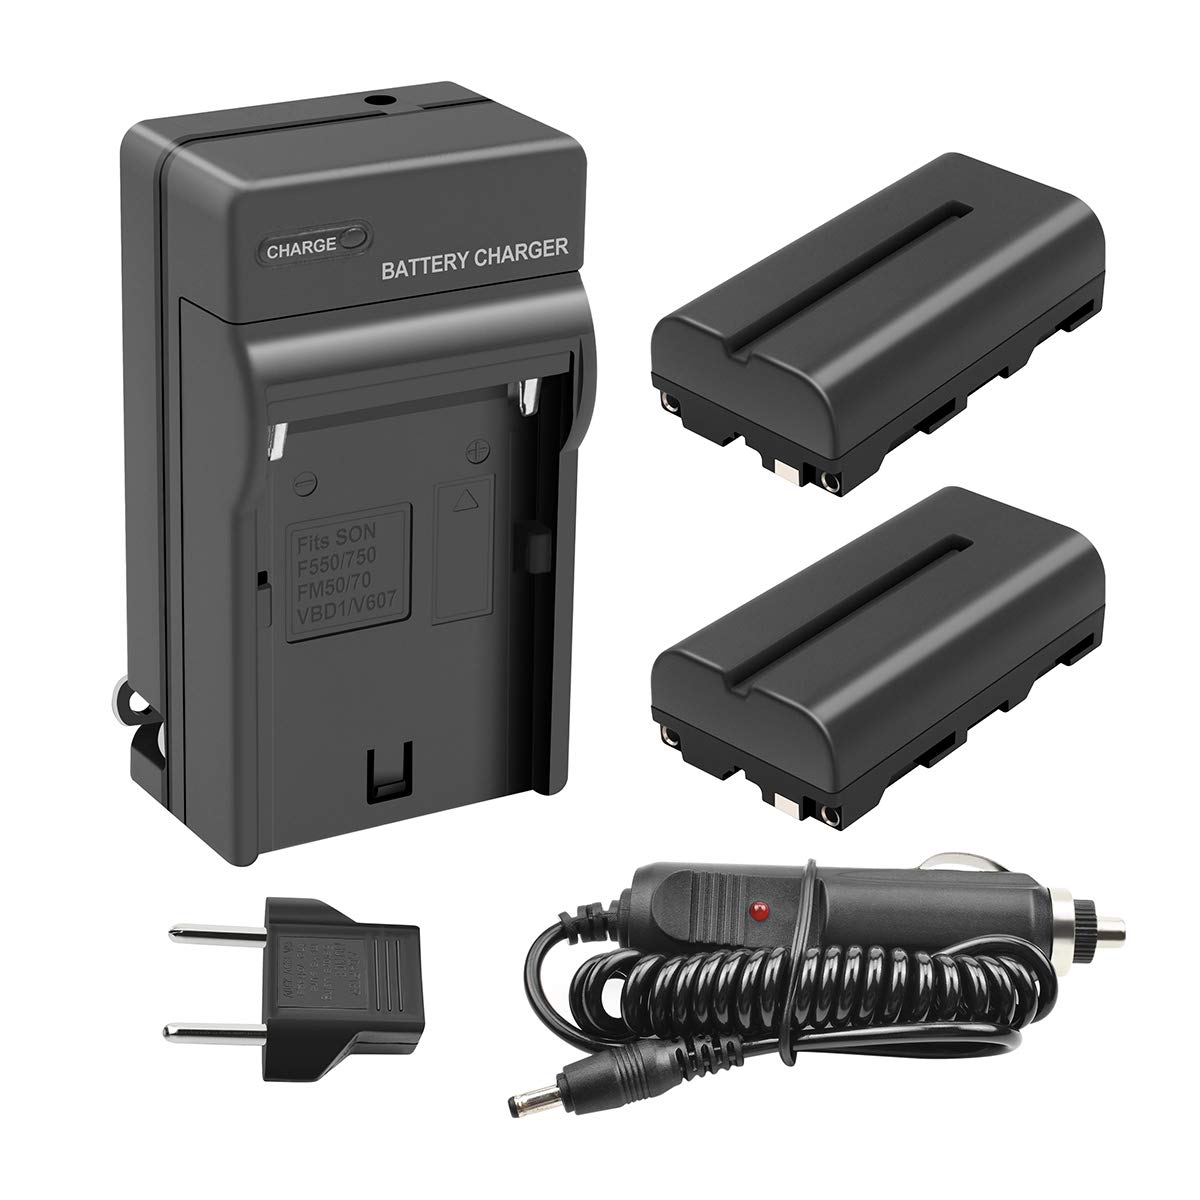 Turpow 2 Pack NP-F550 Replacement Battery and Charger Compatible with Sony NP-F330 NP-F530 NP-F570 Battery and Sony CCD-RV100 CCD-RV200 SC5 SC9 TR1 TR940 TR917 Camera CN-160 CN-216 LED Video Light by Turpow